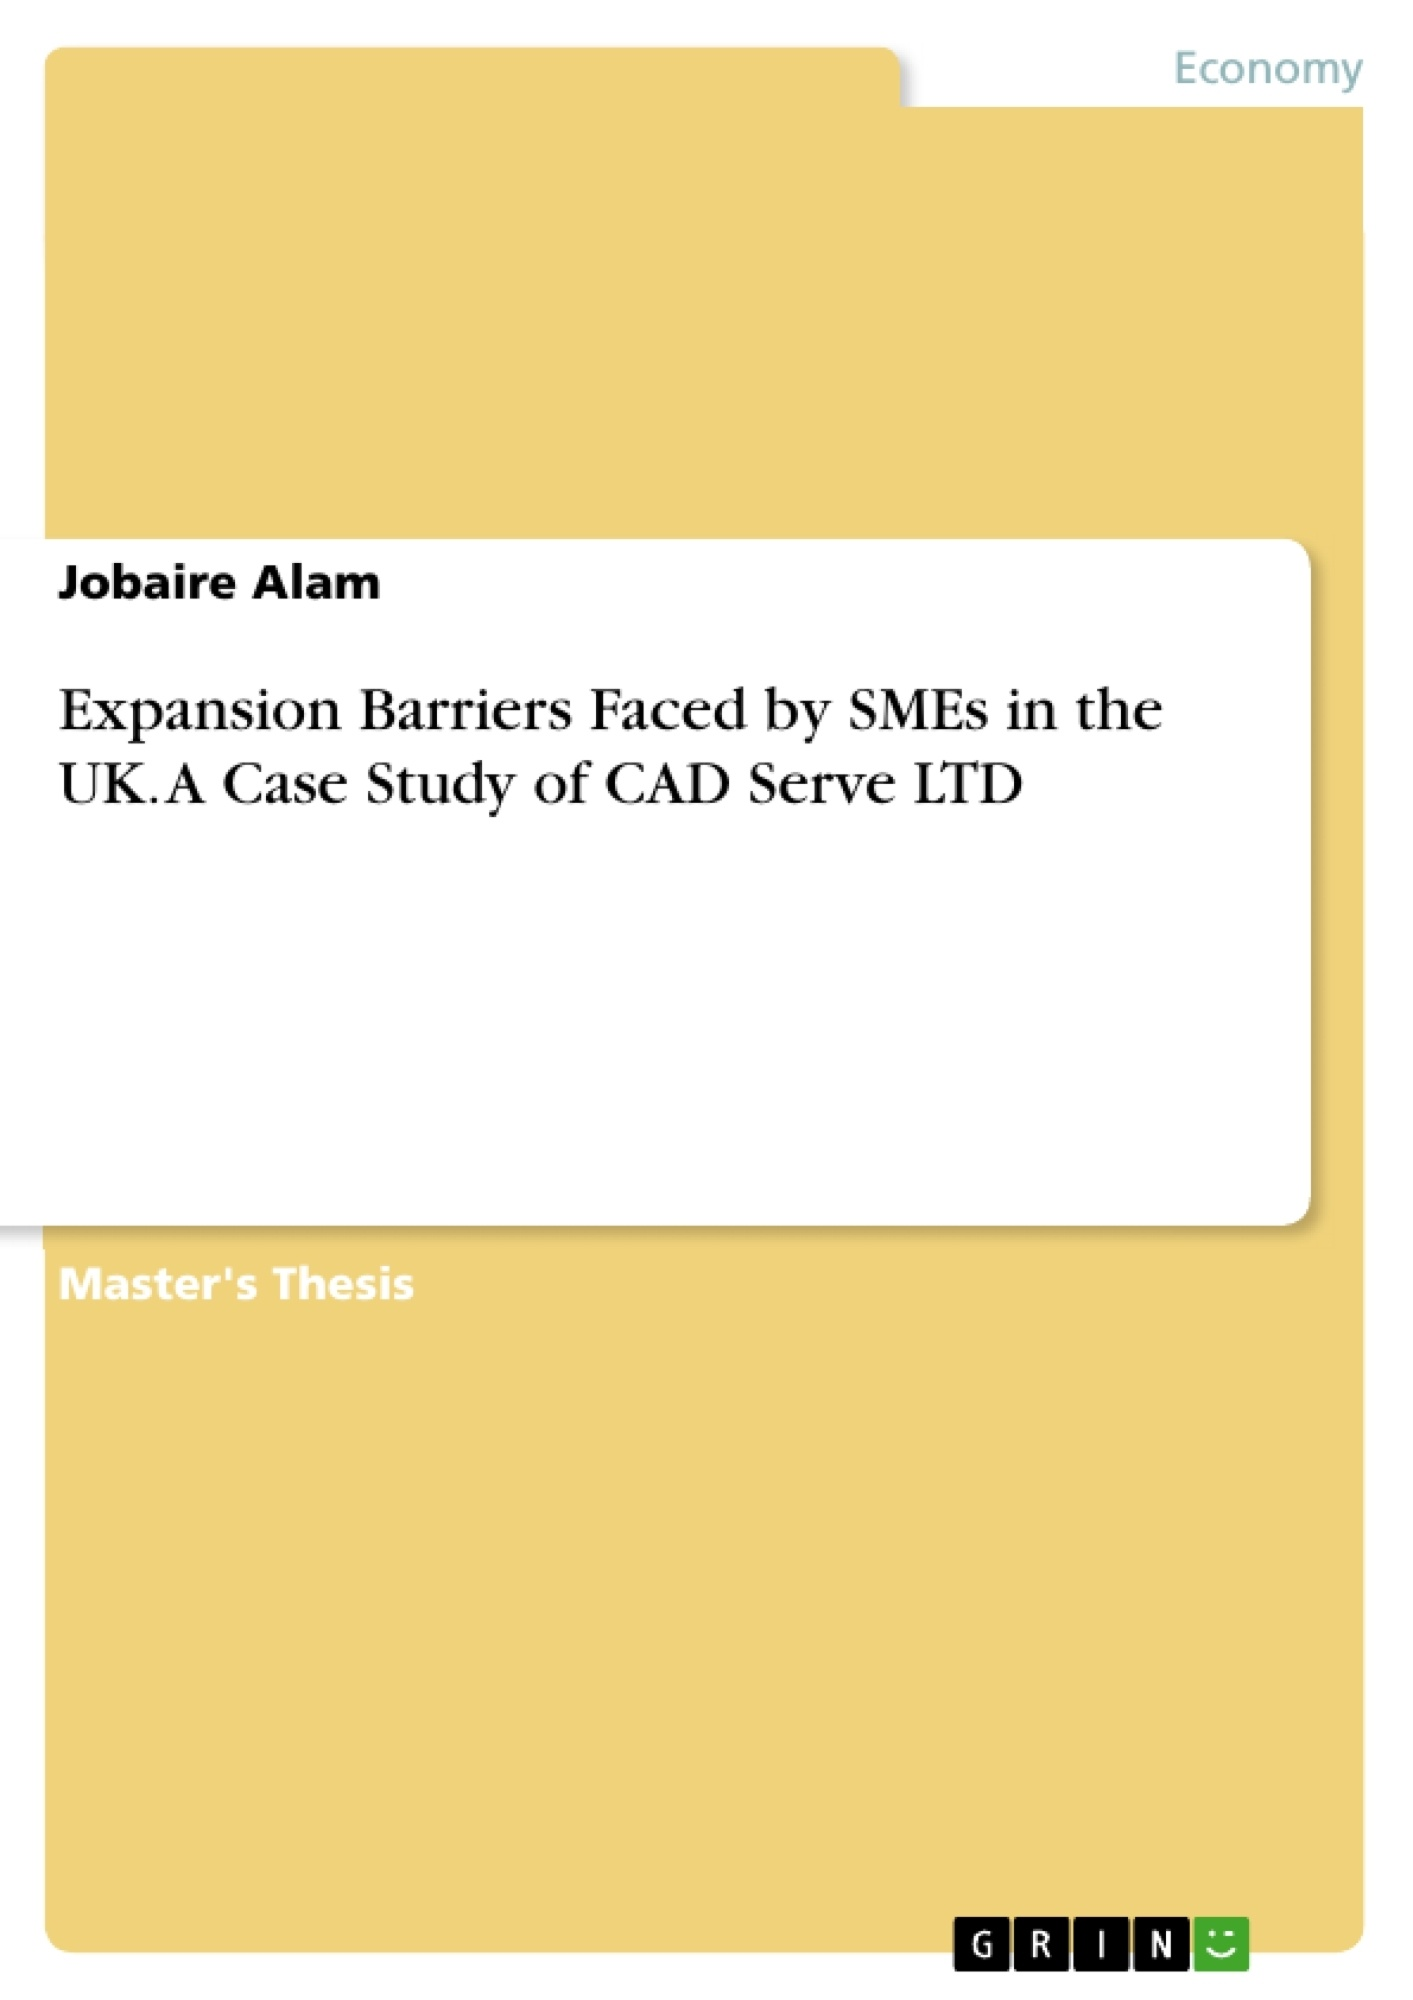 Title: Expansion Barriers Faced by SMEs in the UK. A Case Study of CAD Serve LTD